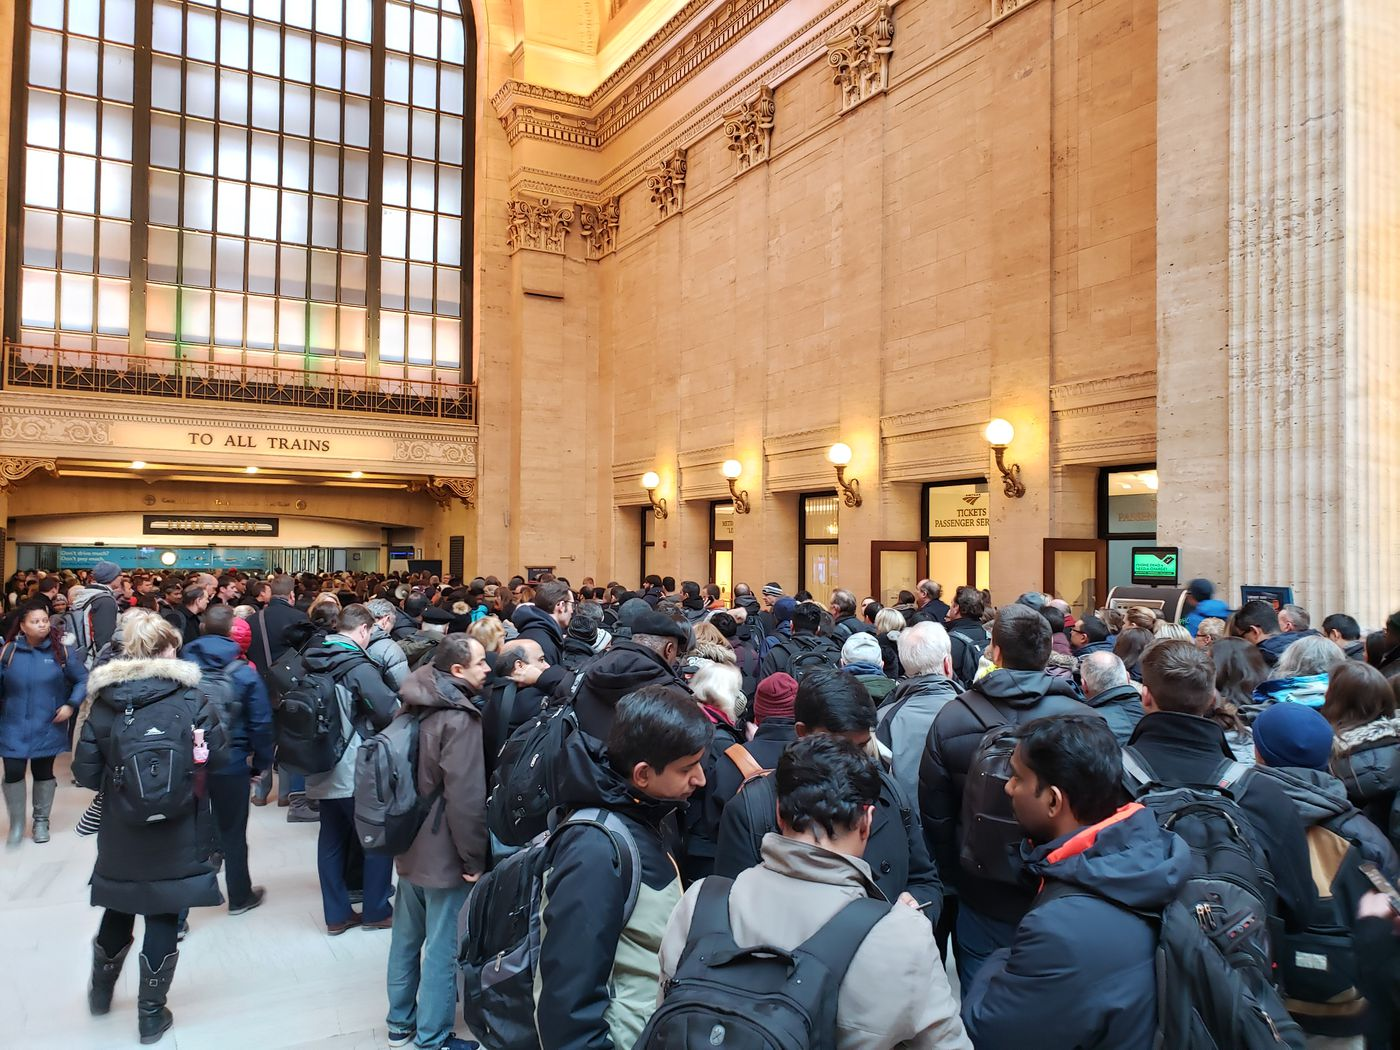 Union Station delays: Metra service back to normal after